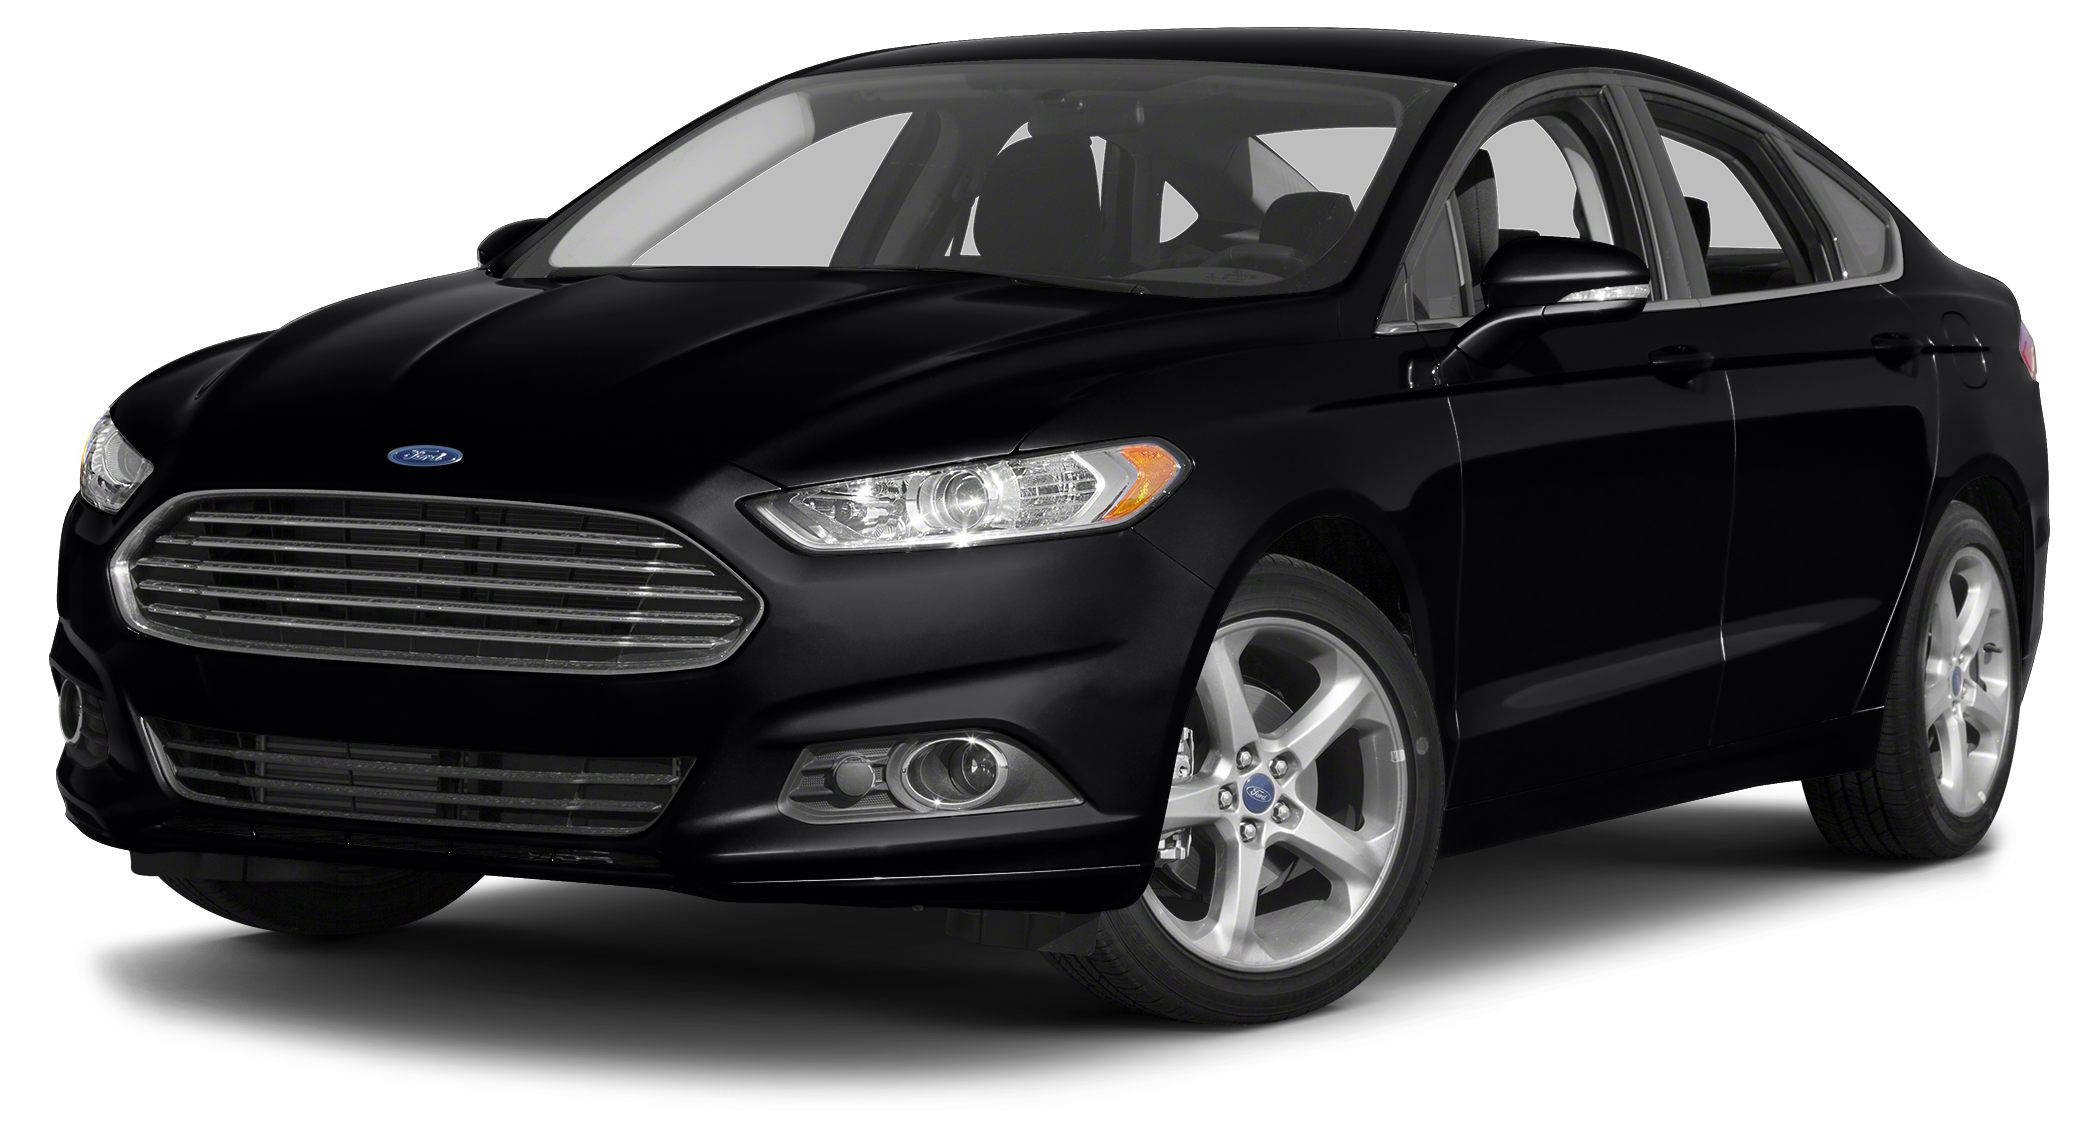 2016 Ford Fusion SE LUXURY LEATHER UPGRADED 20L ECOBOOST POWER MOONROOF LUXURY WHEELS REAR C